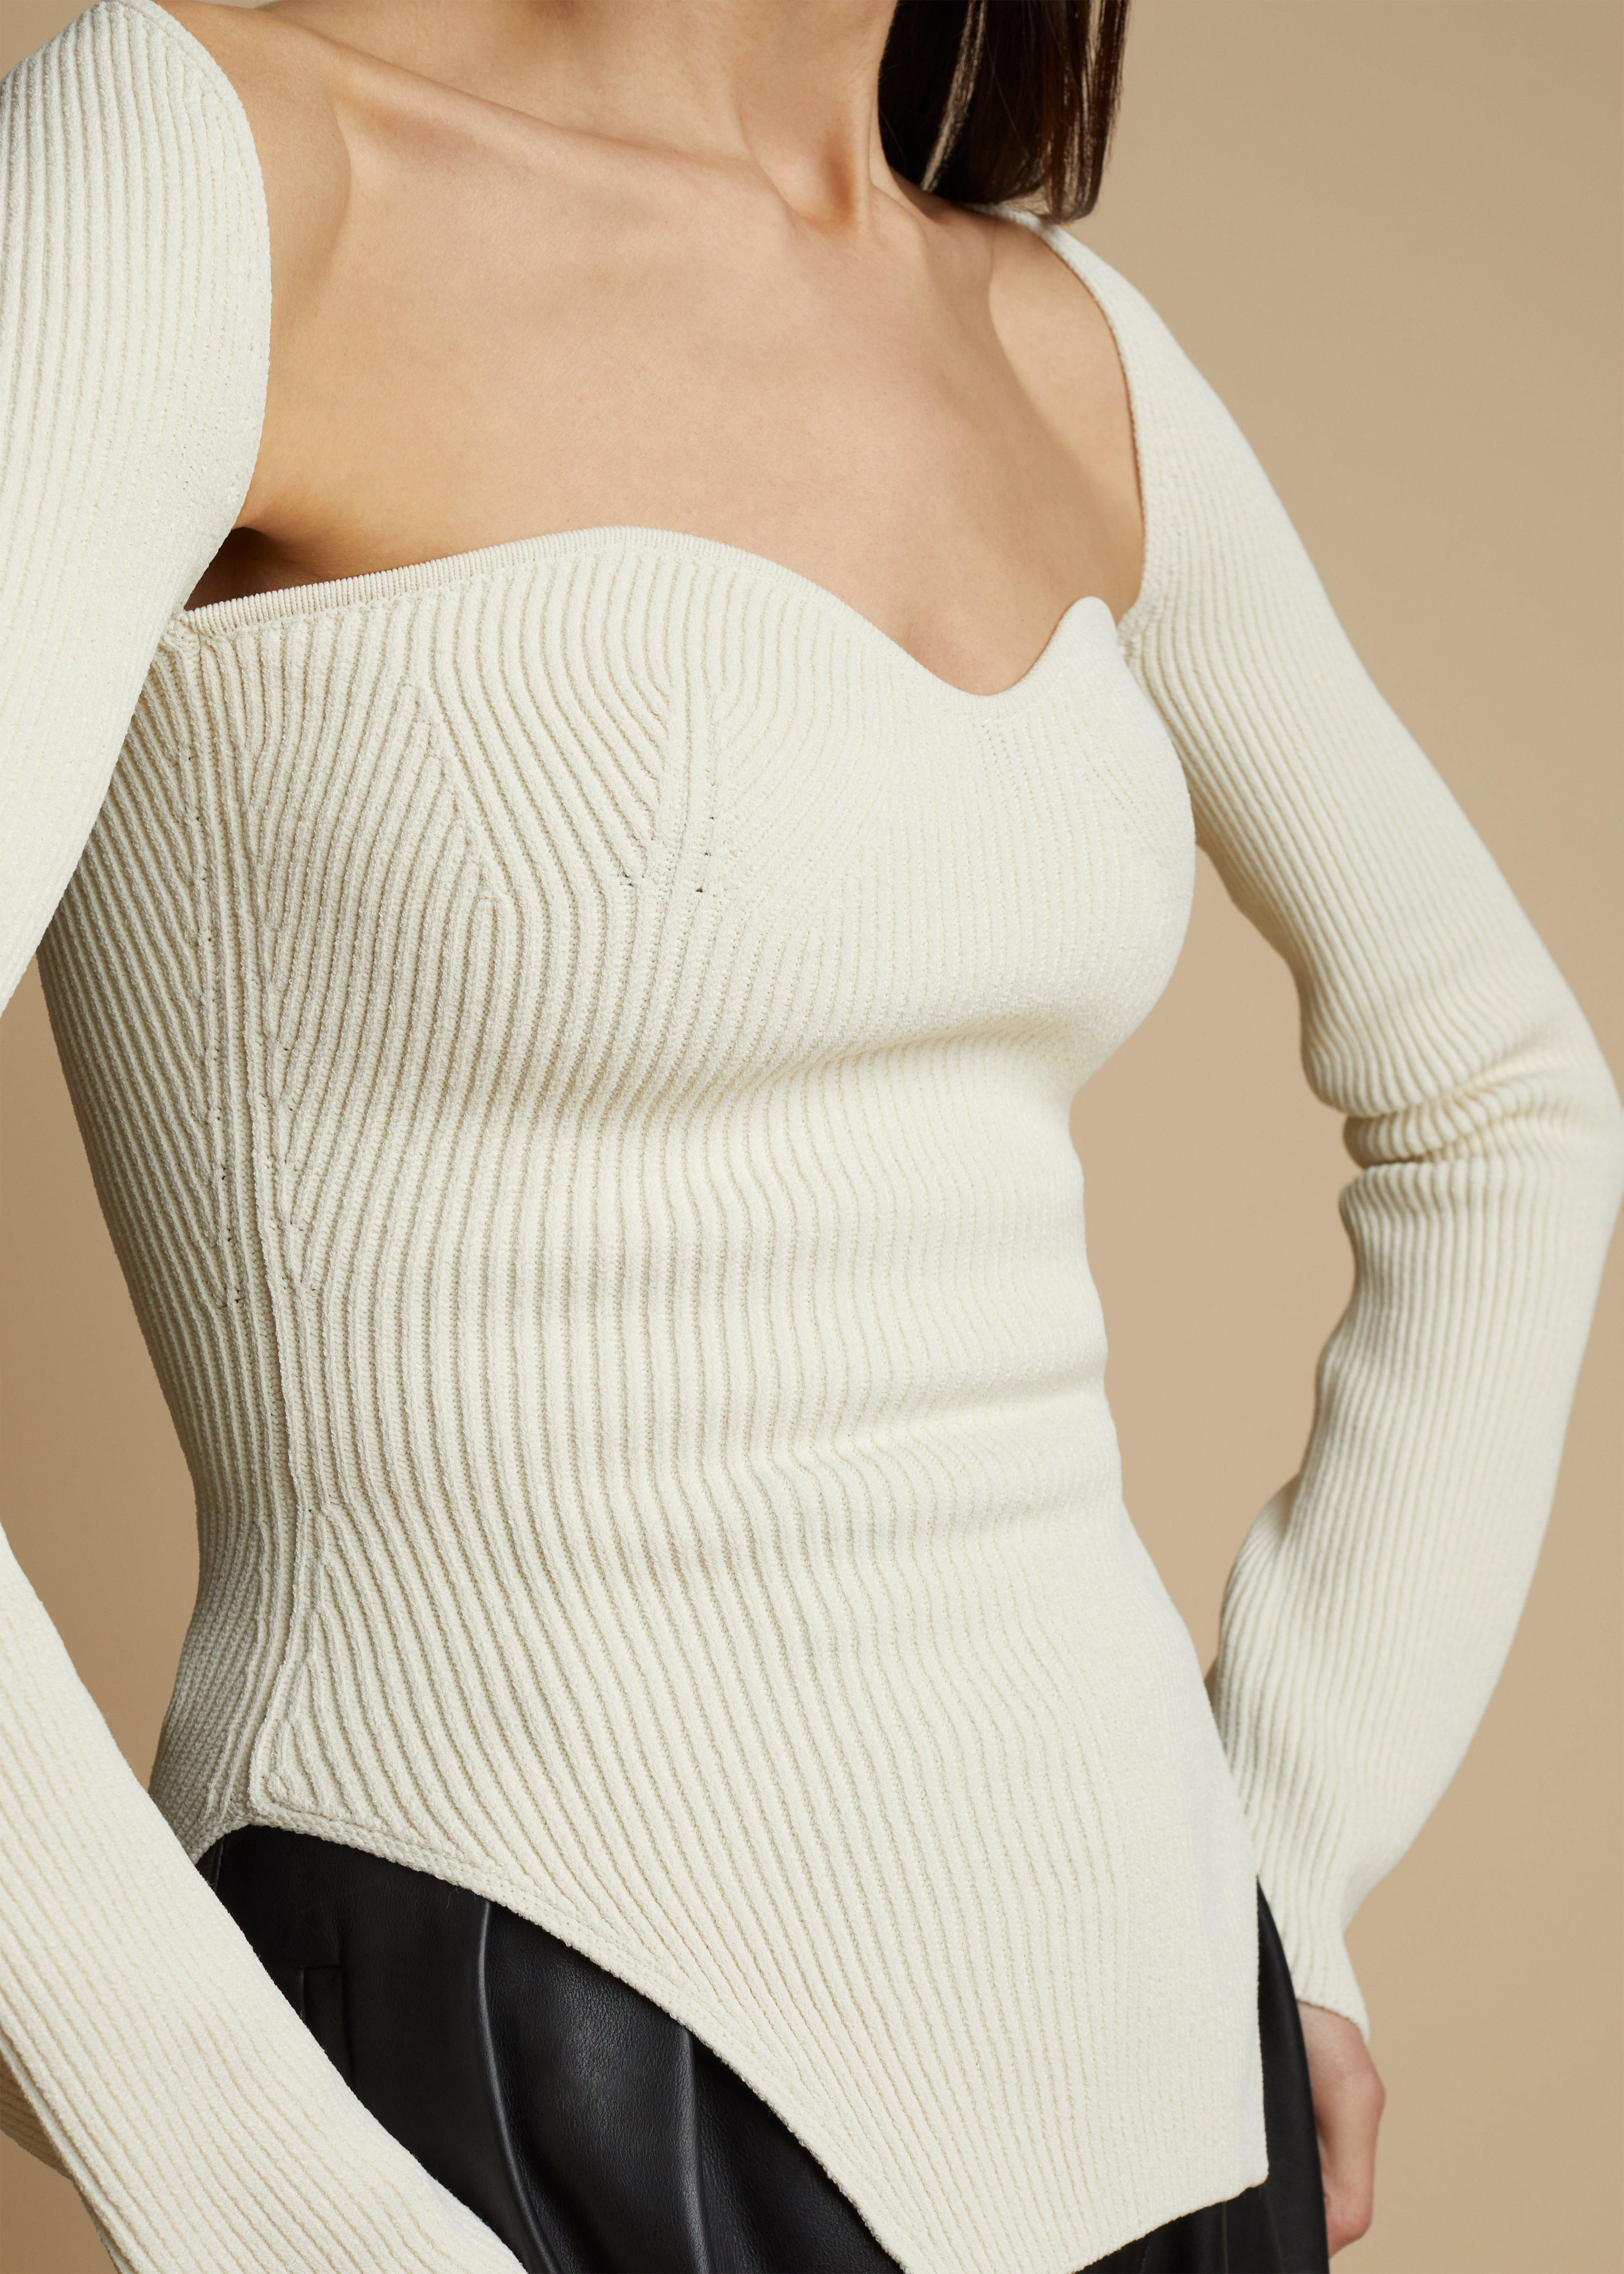 The Maddy Top in Cream 5